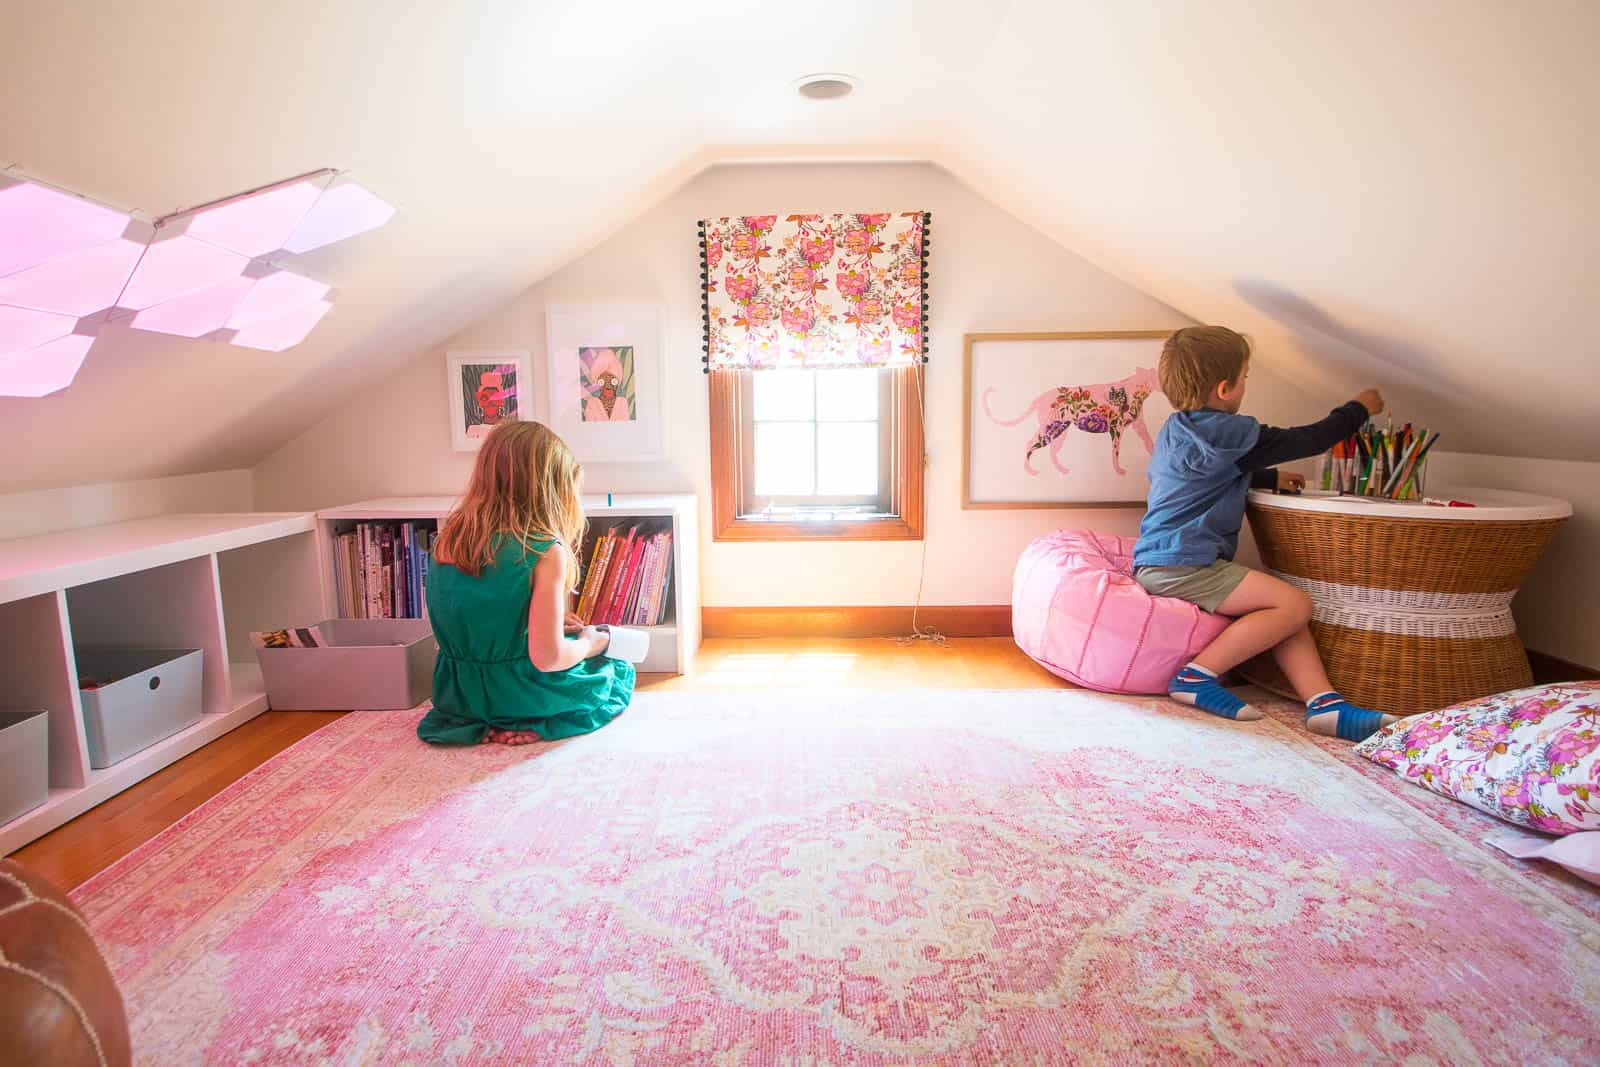 new rug in reading nook